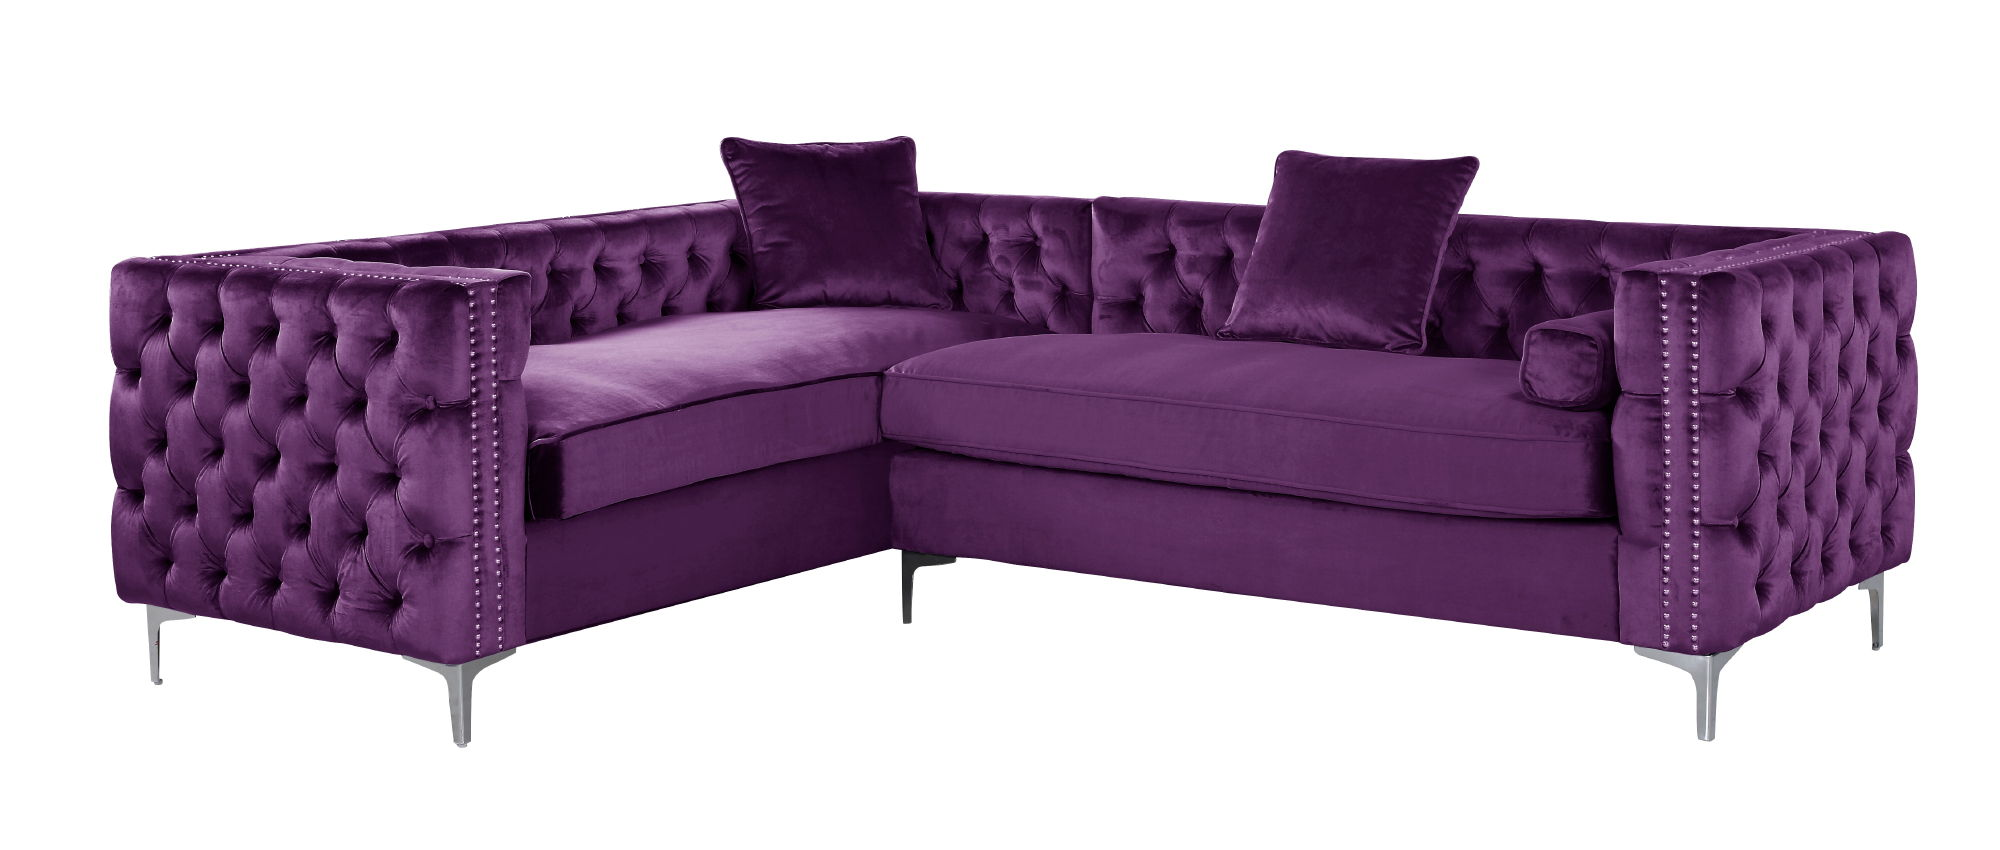 Fantastic Chic Home Mozart Plum Left Hand Facing Sectional Sofa With 3 Accent Pillows Inzonedesignstudio Interior Chair Design Inzonedesignstudiocom